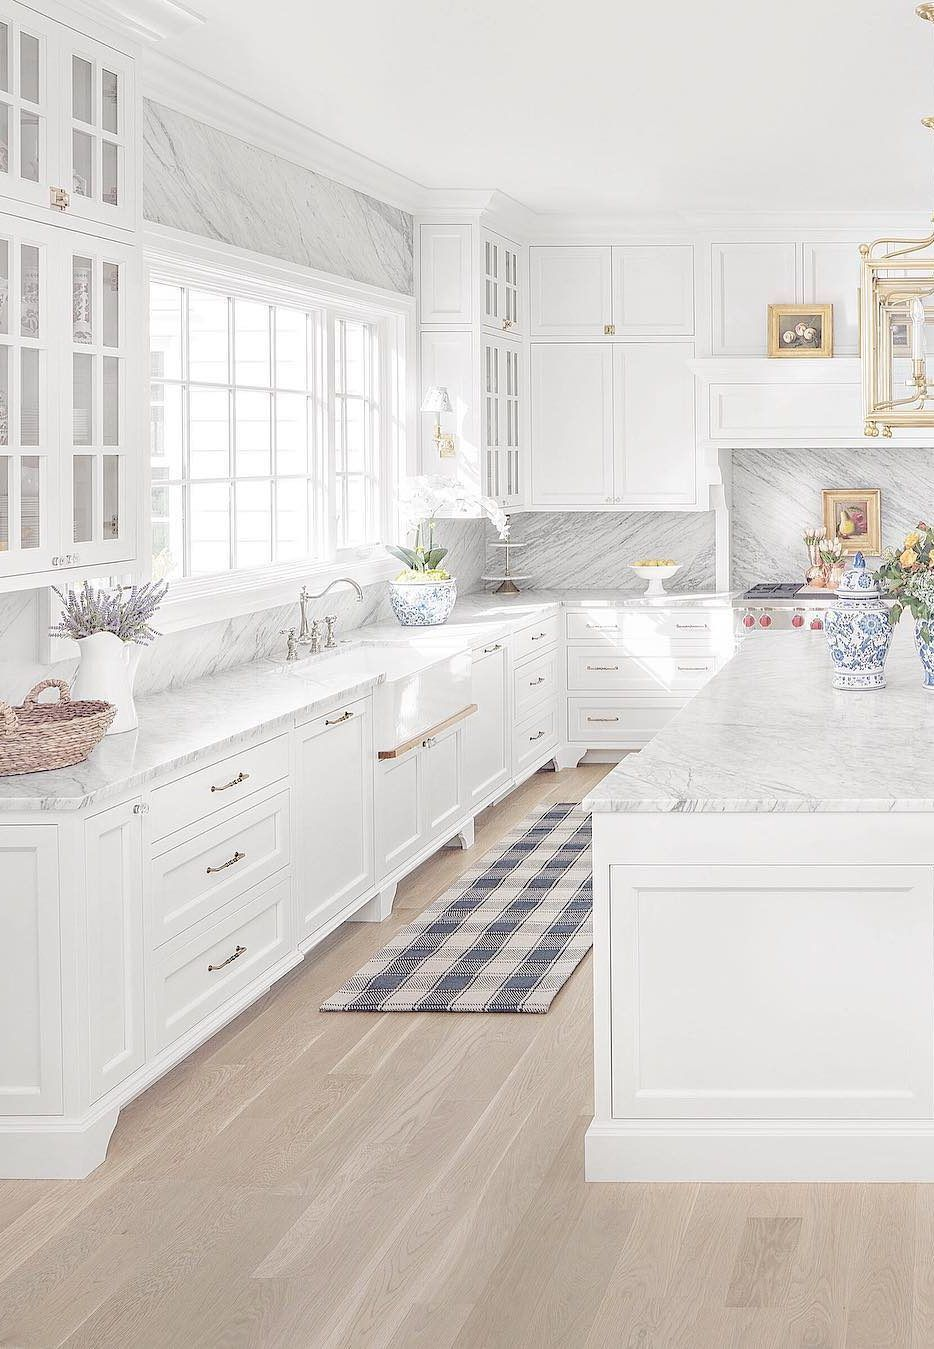 White Kitchen Ideas White Never Ever Falls Short To Provide A Kitchen Design A Classic Look White Kitchen Design Kitchen Design Trends Latest Kitchen Designs